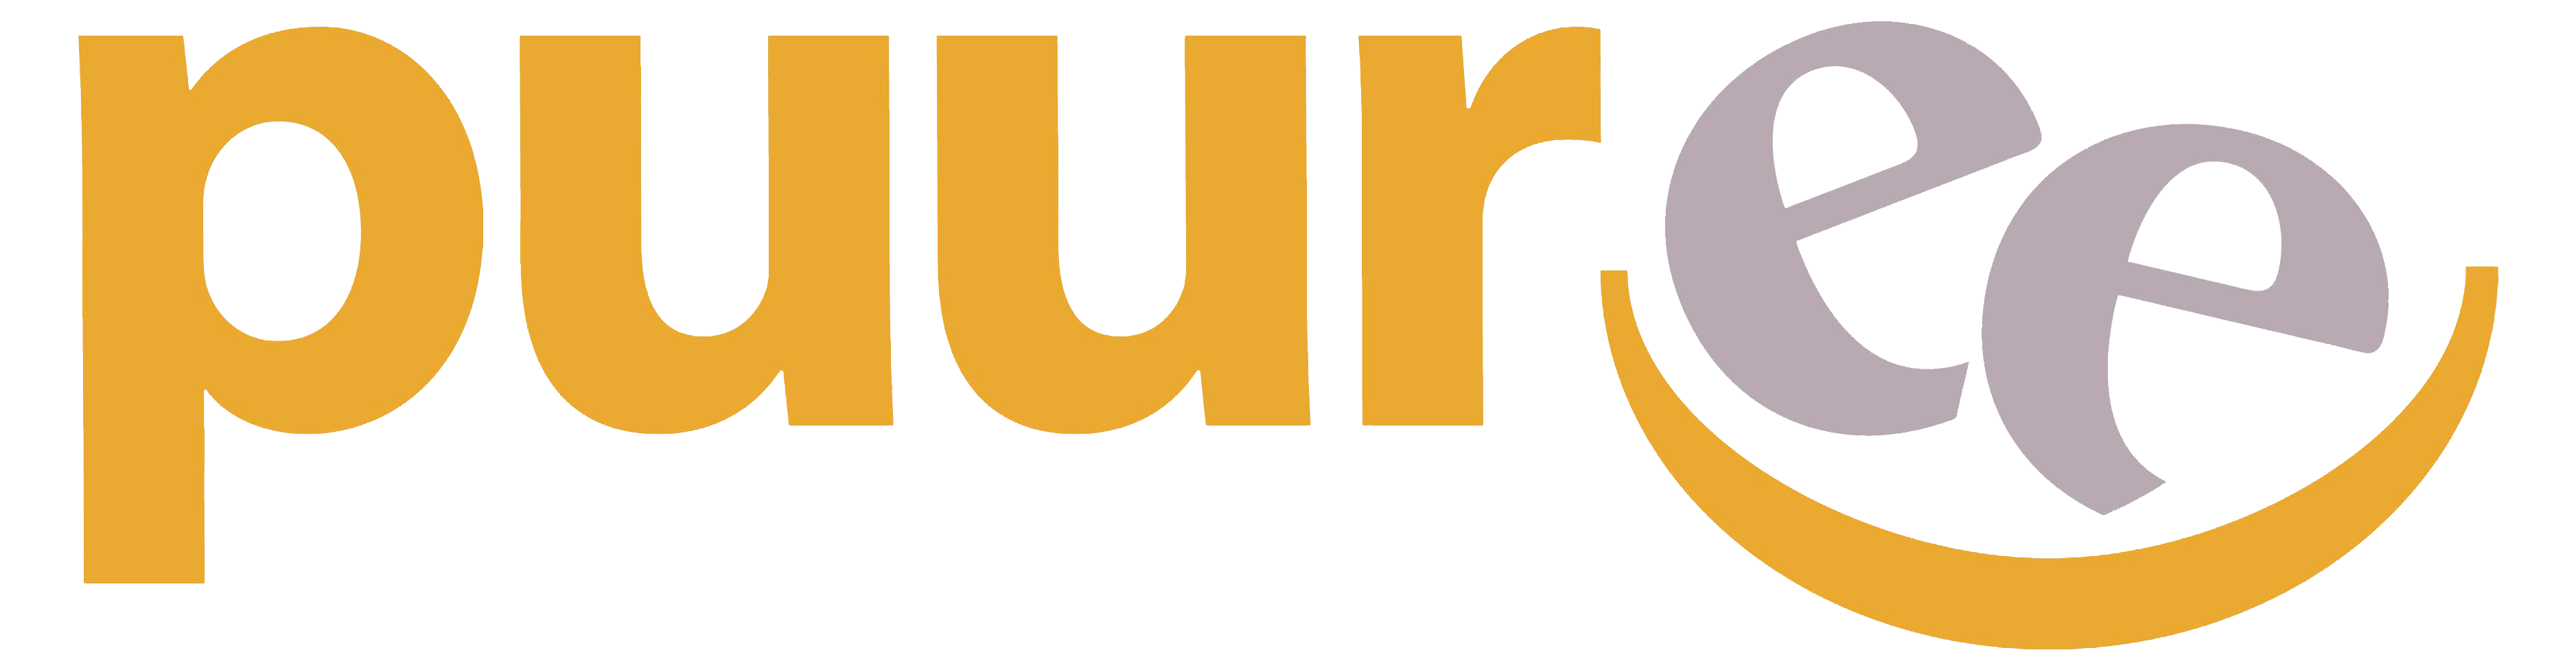 logo PUURee